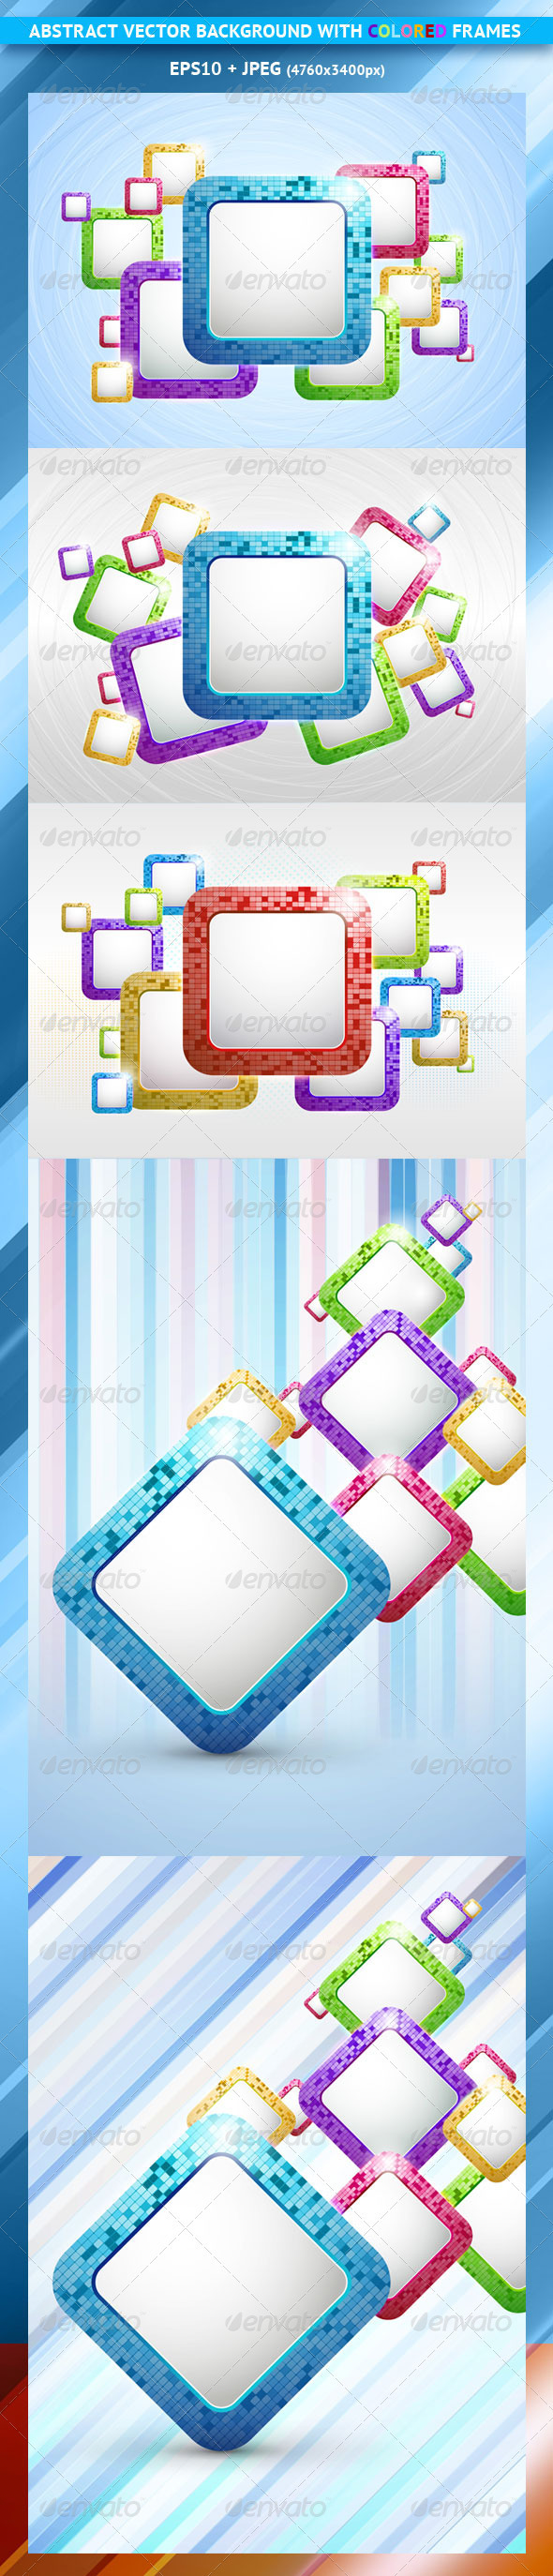 Set of Abstract Vector Backgrounds with Frames - Backgrounds Decorative